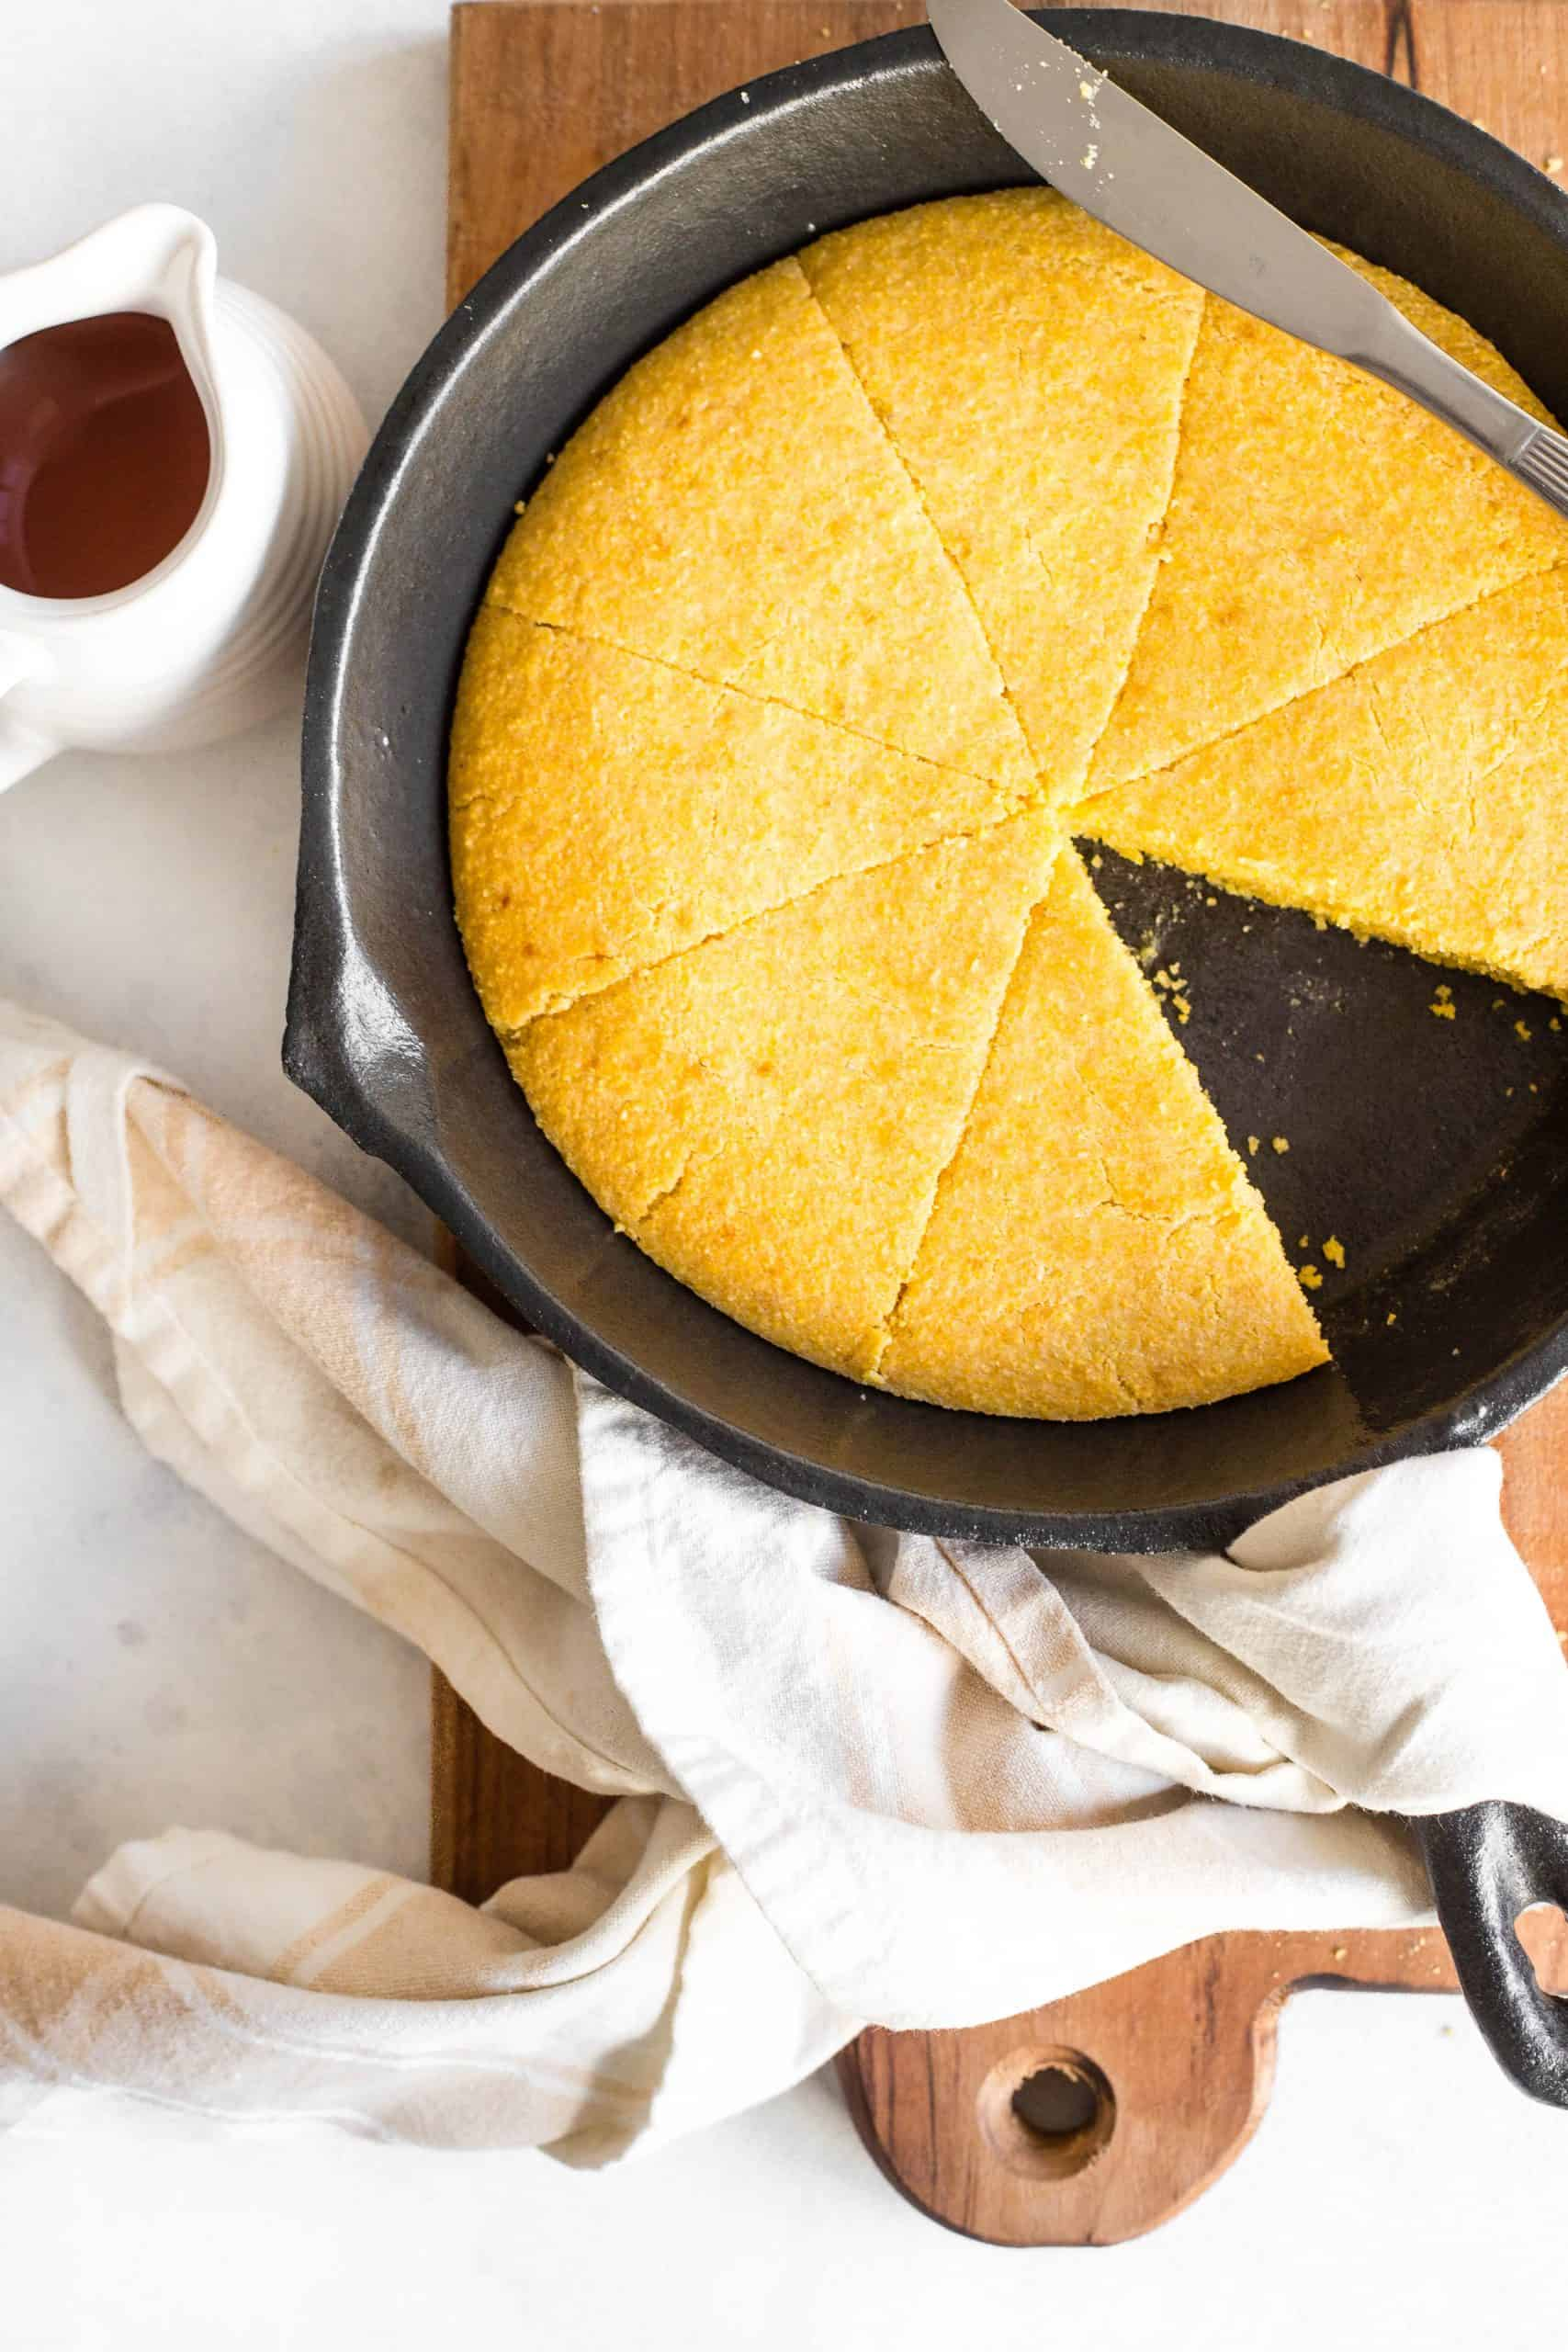 Top down view of a skillet with cornbread and a small jug of honey.